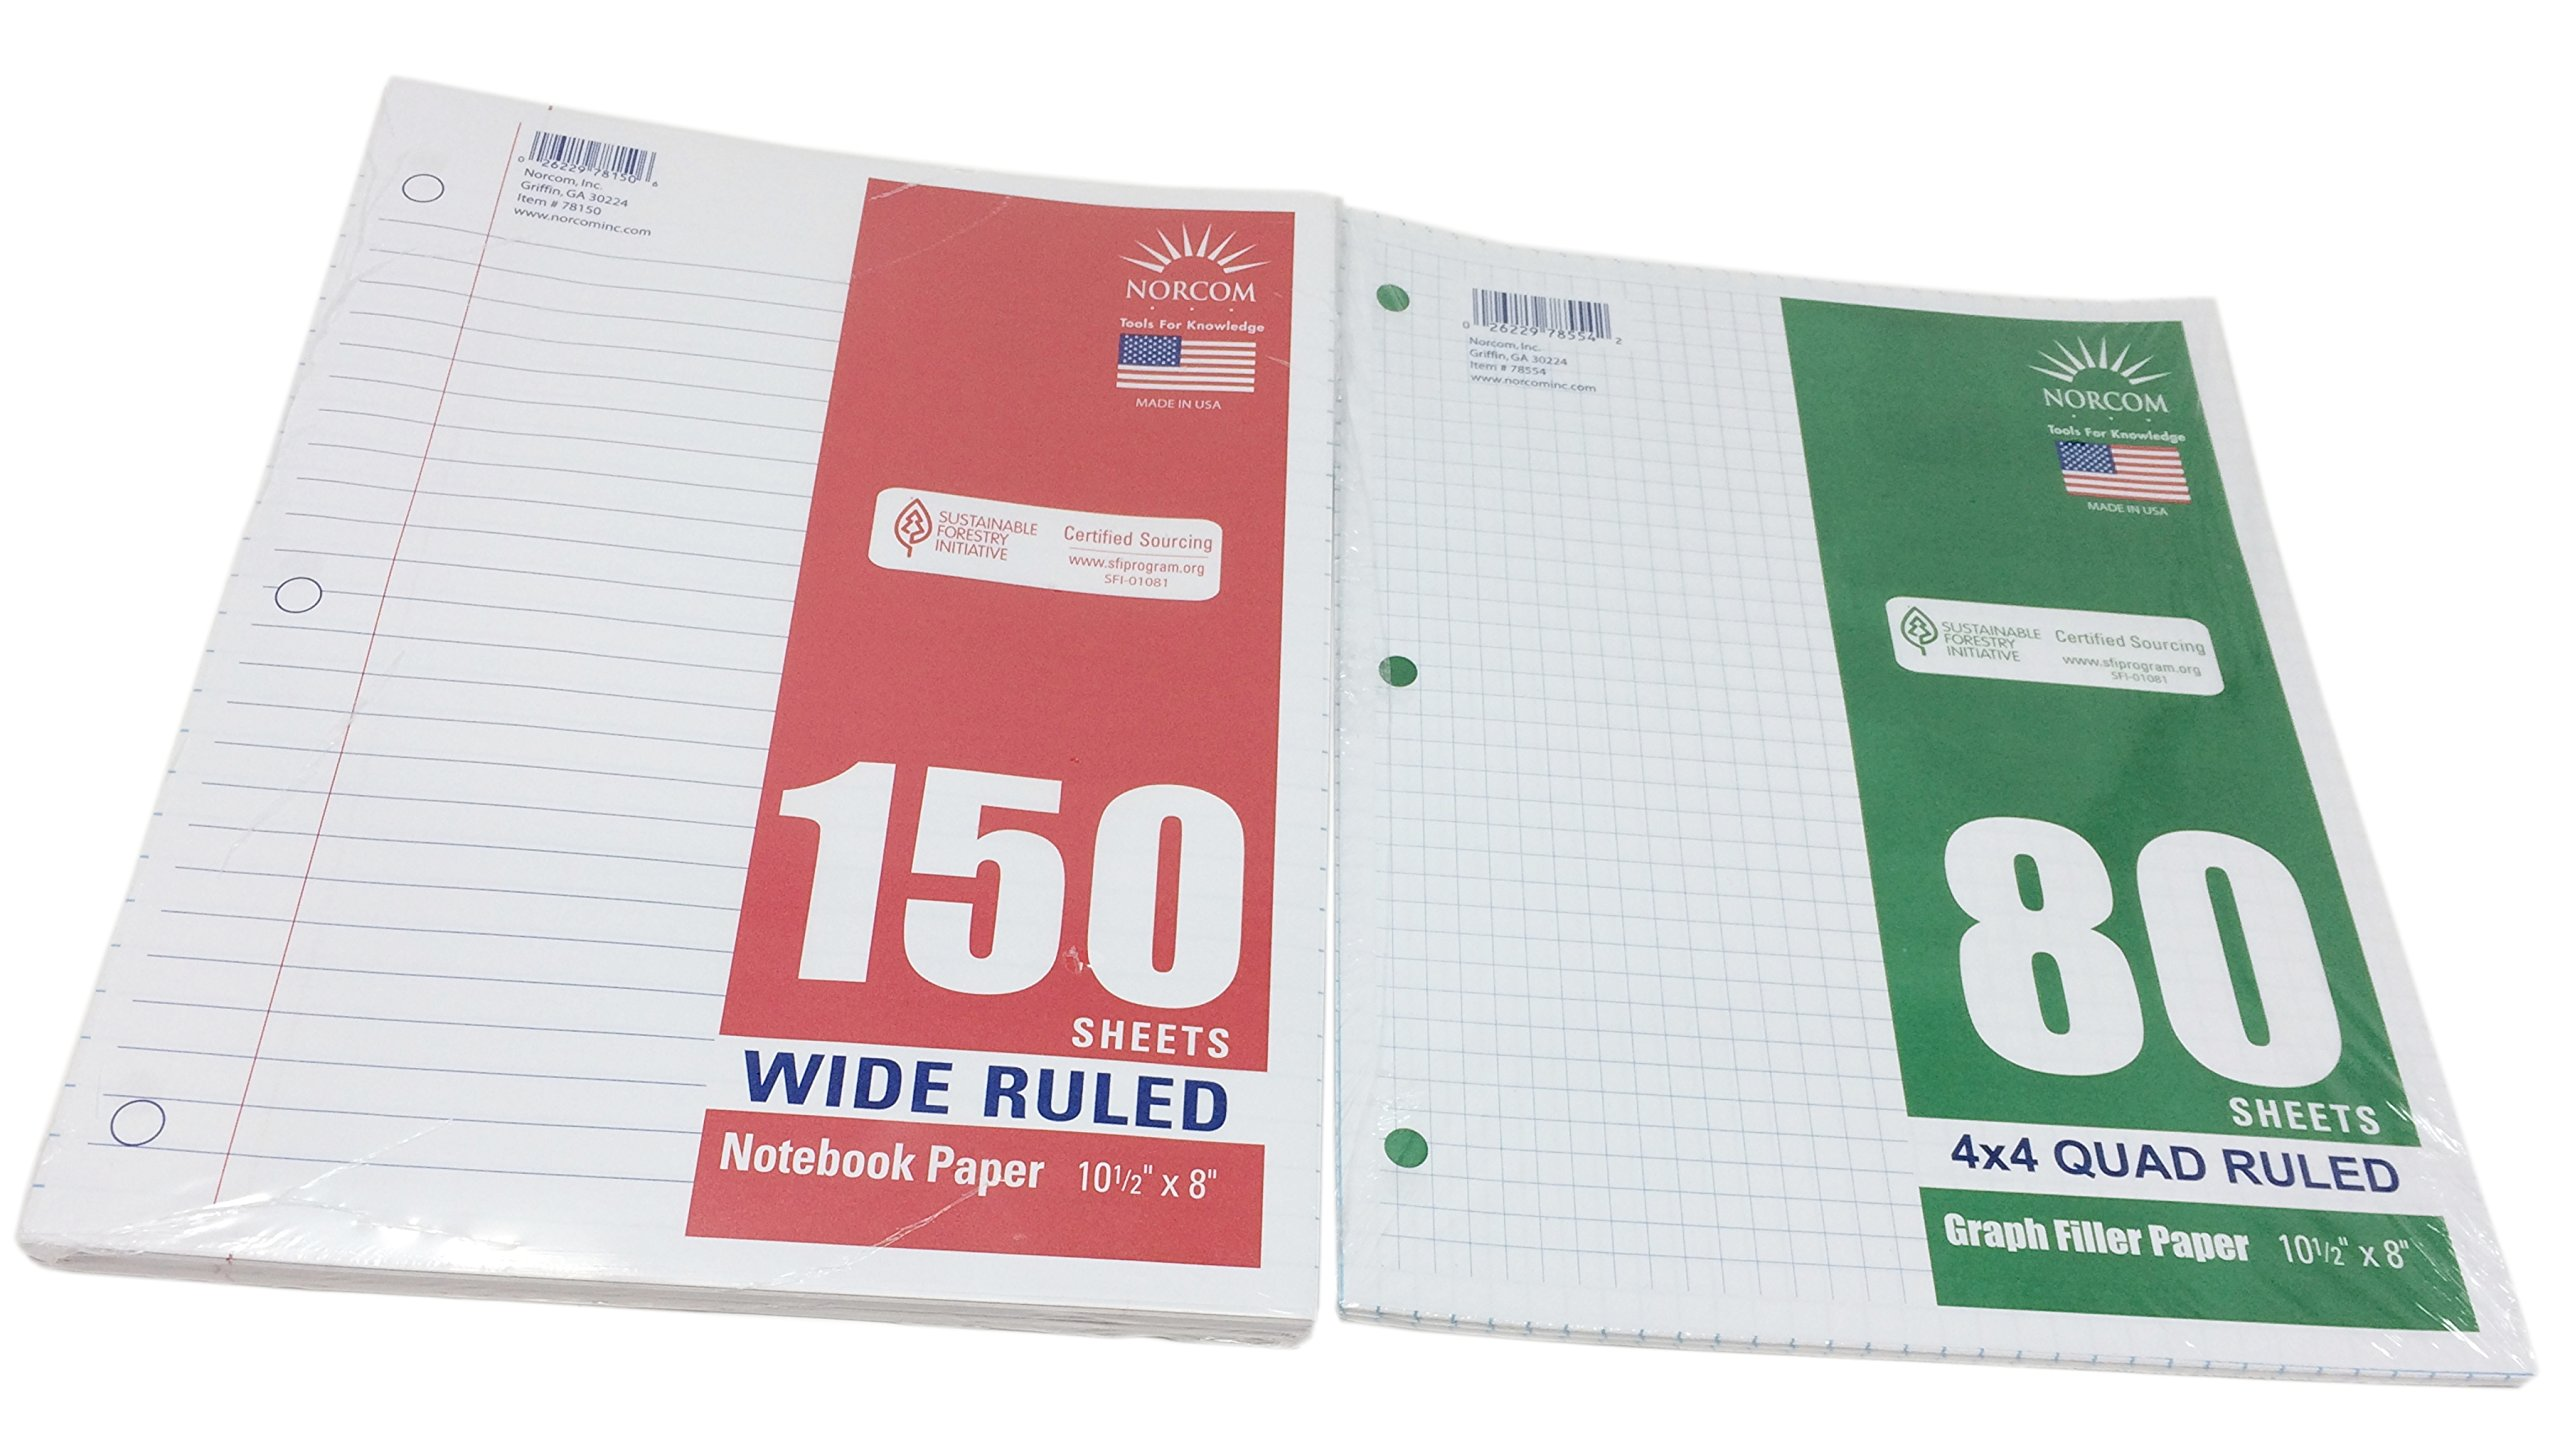 Norcom Loose-Leaf Wide Ruled Filler Notebook Paper and Graph Paper